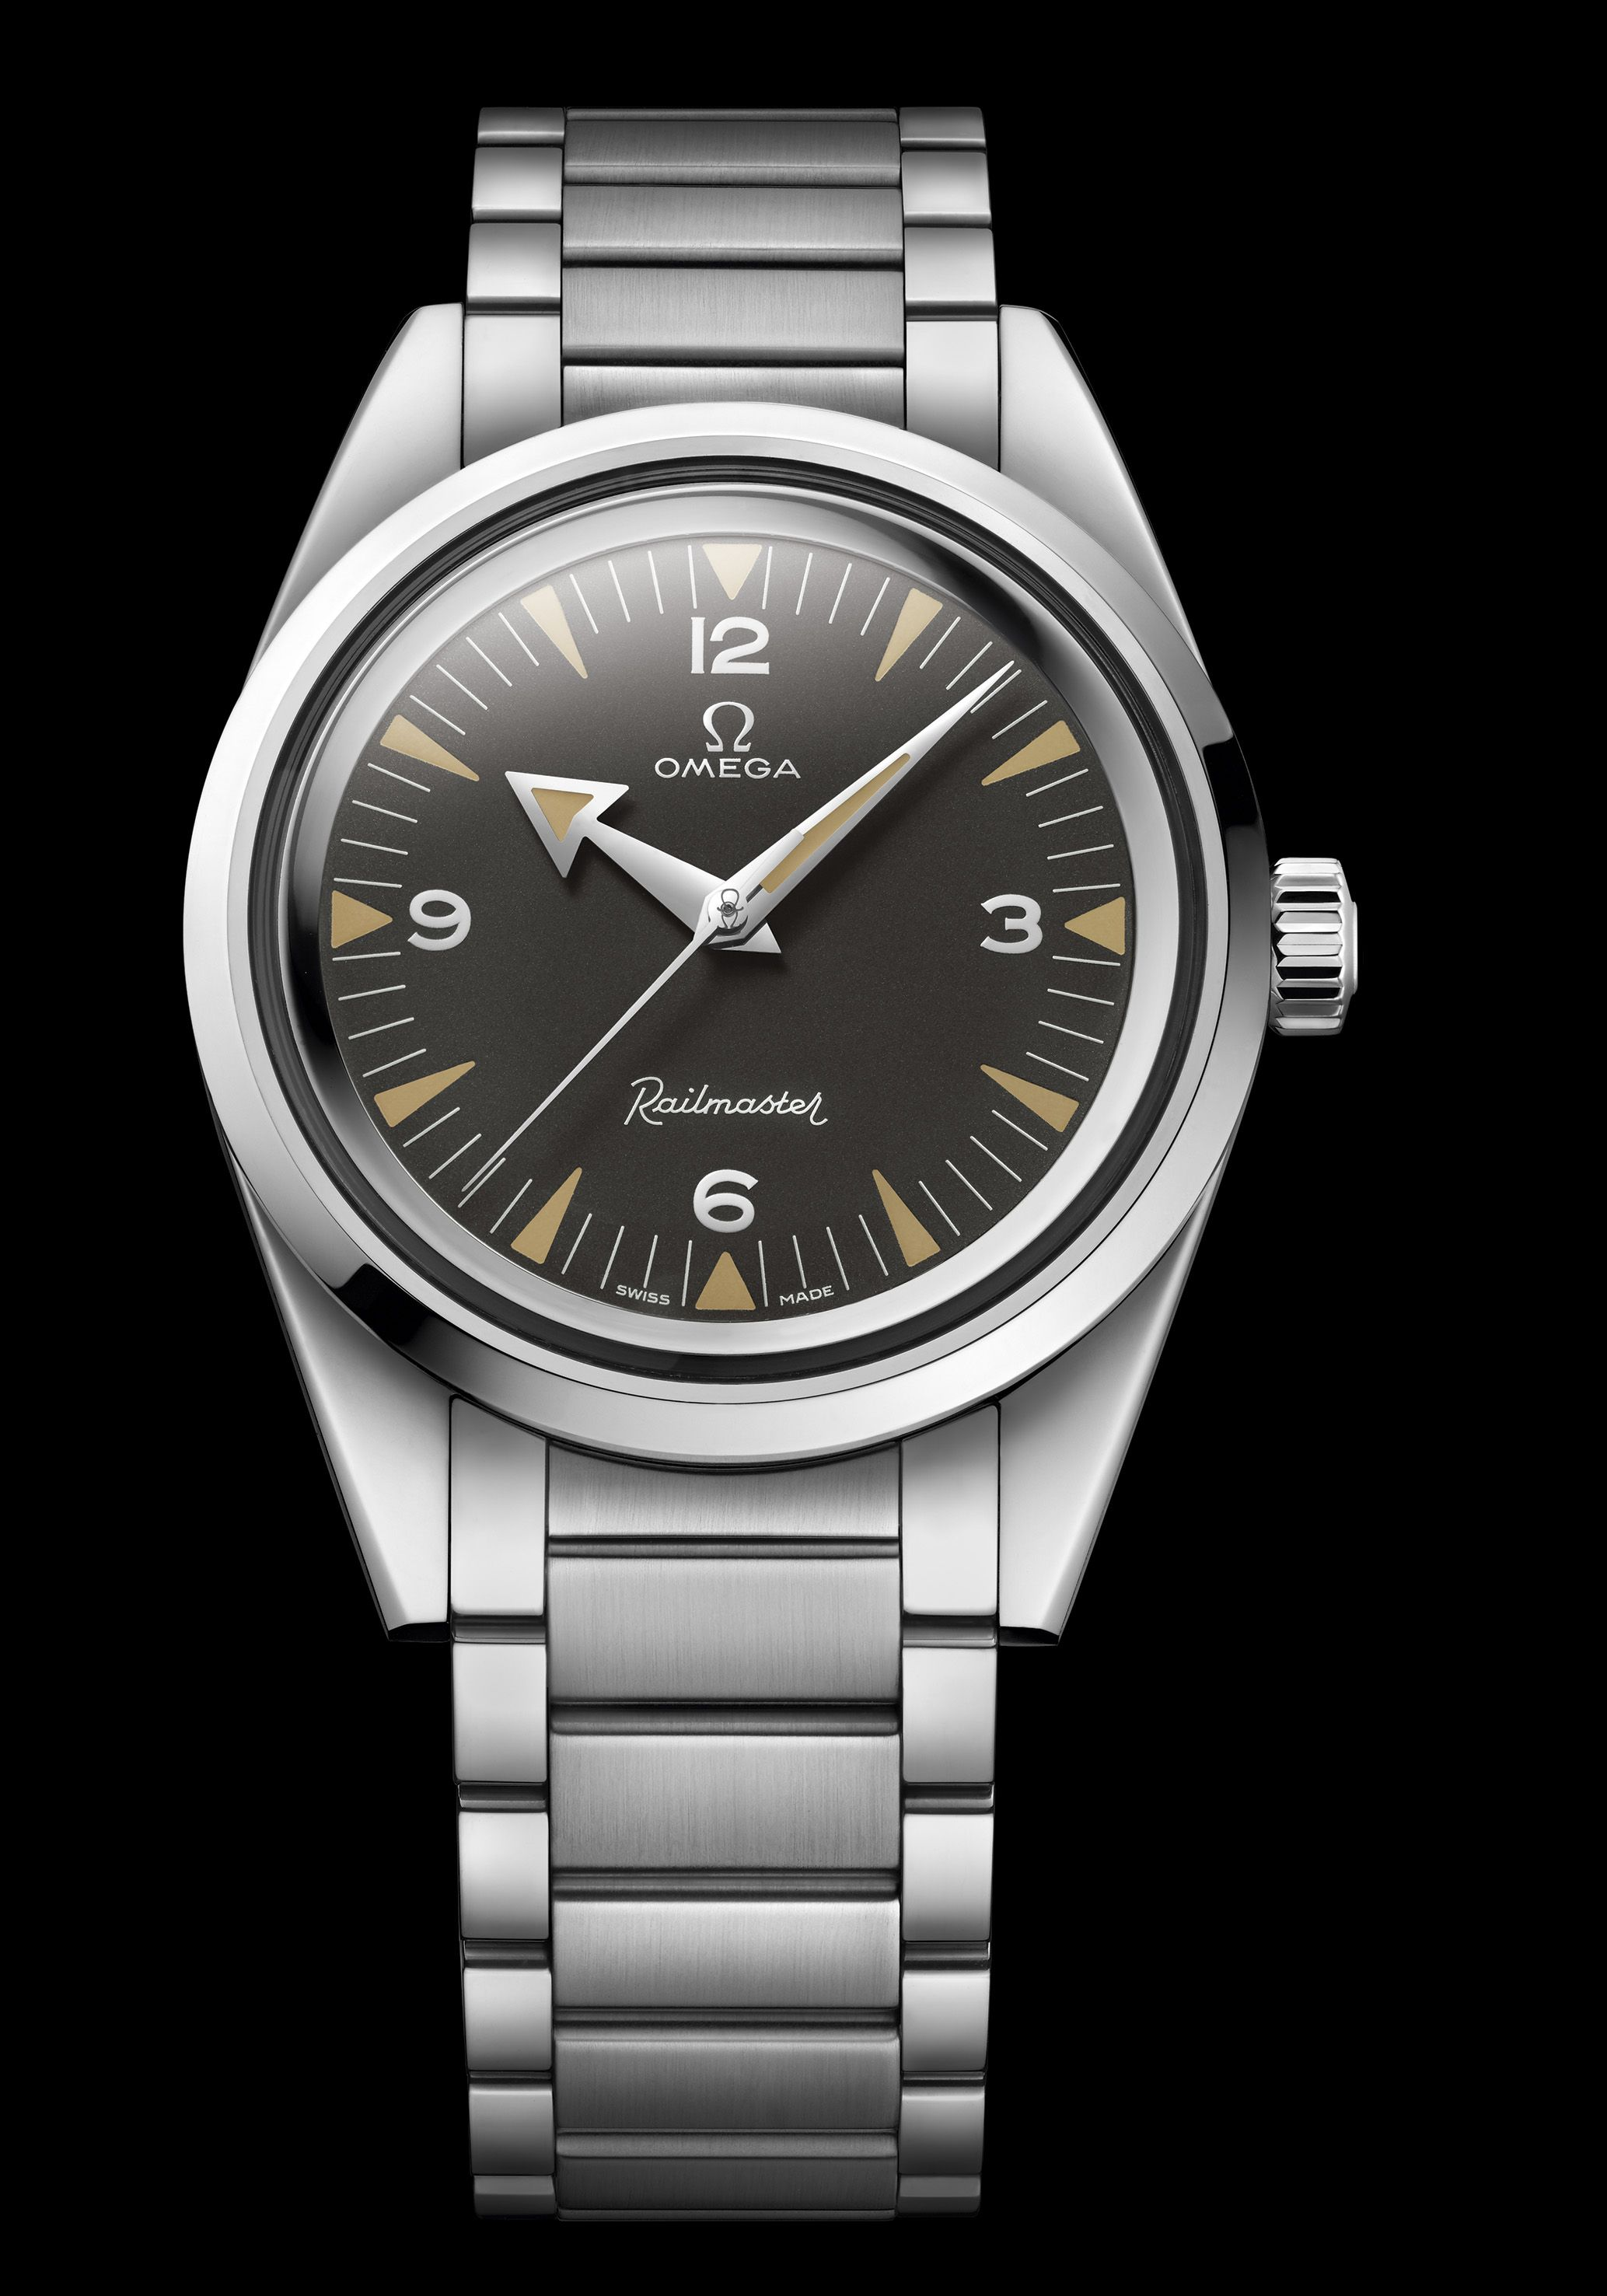 #omega #watches #timepiece #baselworld